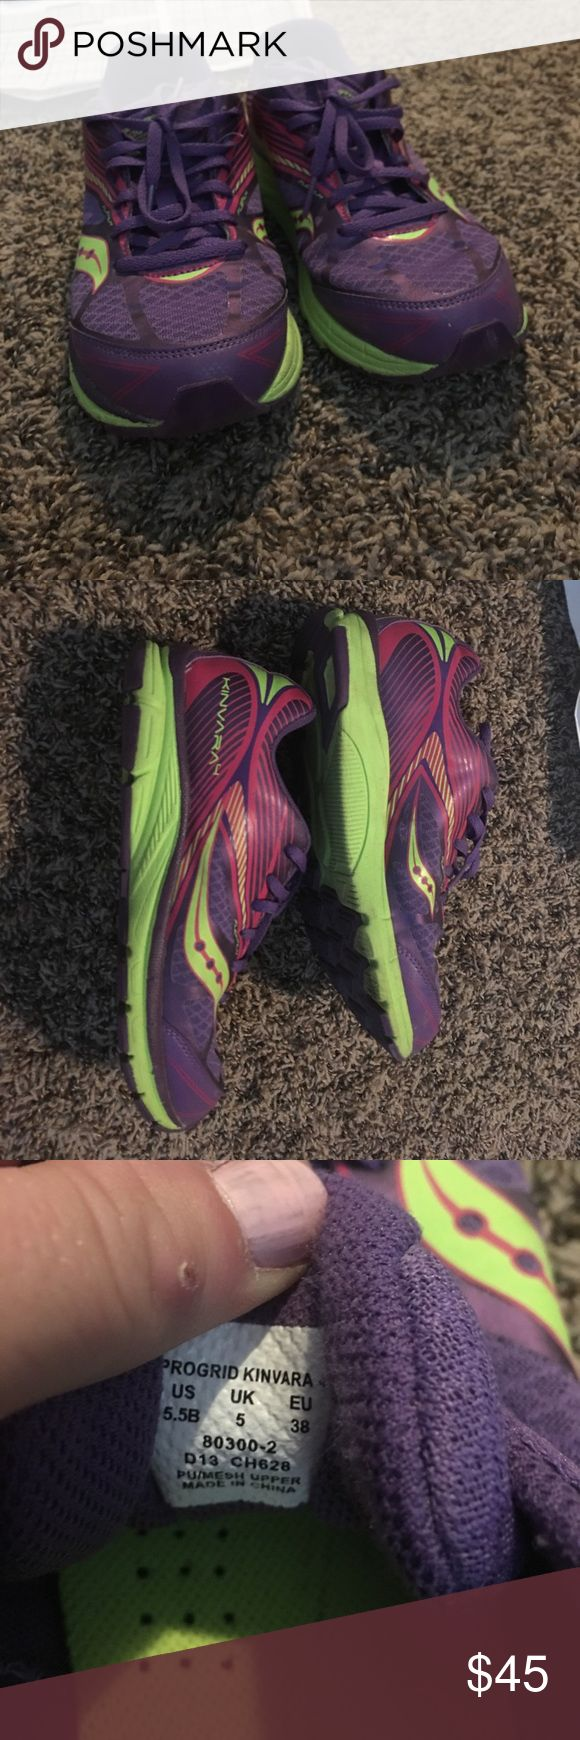 Saucony kinvara 4 running shoes Gently worn kinvara 4 running shoes. Equal to women's size 7.5. Wore for a single 5k (3 mile race) and didn't like how they felt me. Soles are still in excellent shape. Beautiful colors   Plenty of life left. Saucony Shoes Sneakers